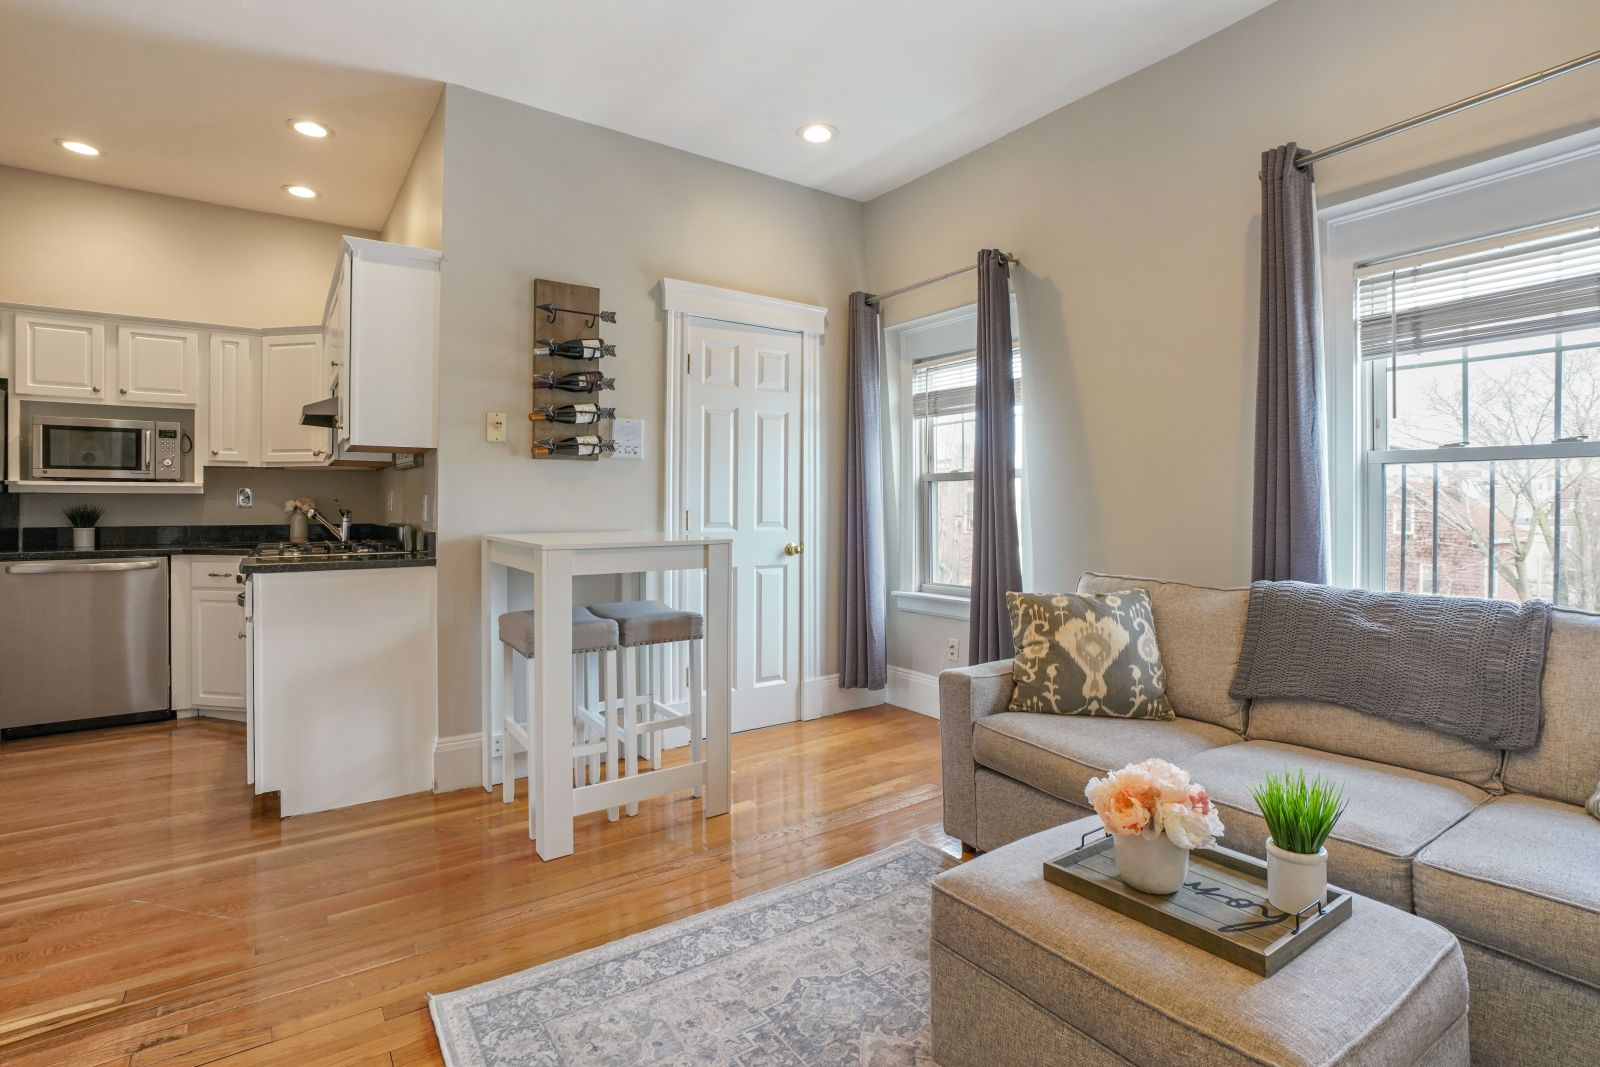 [Just Listed] Beautiful, Top Floor, South Boston One Bedroom with Roof Deck